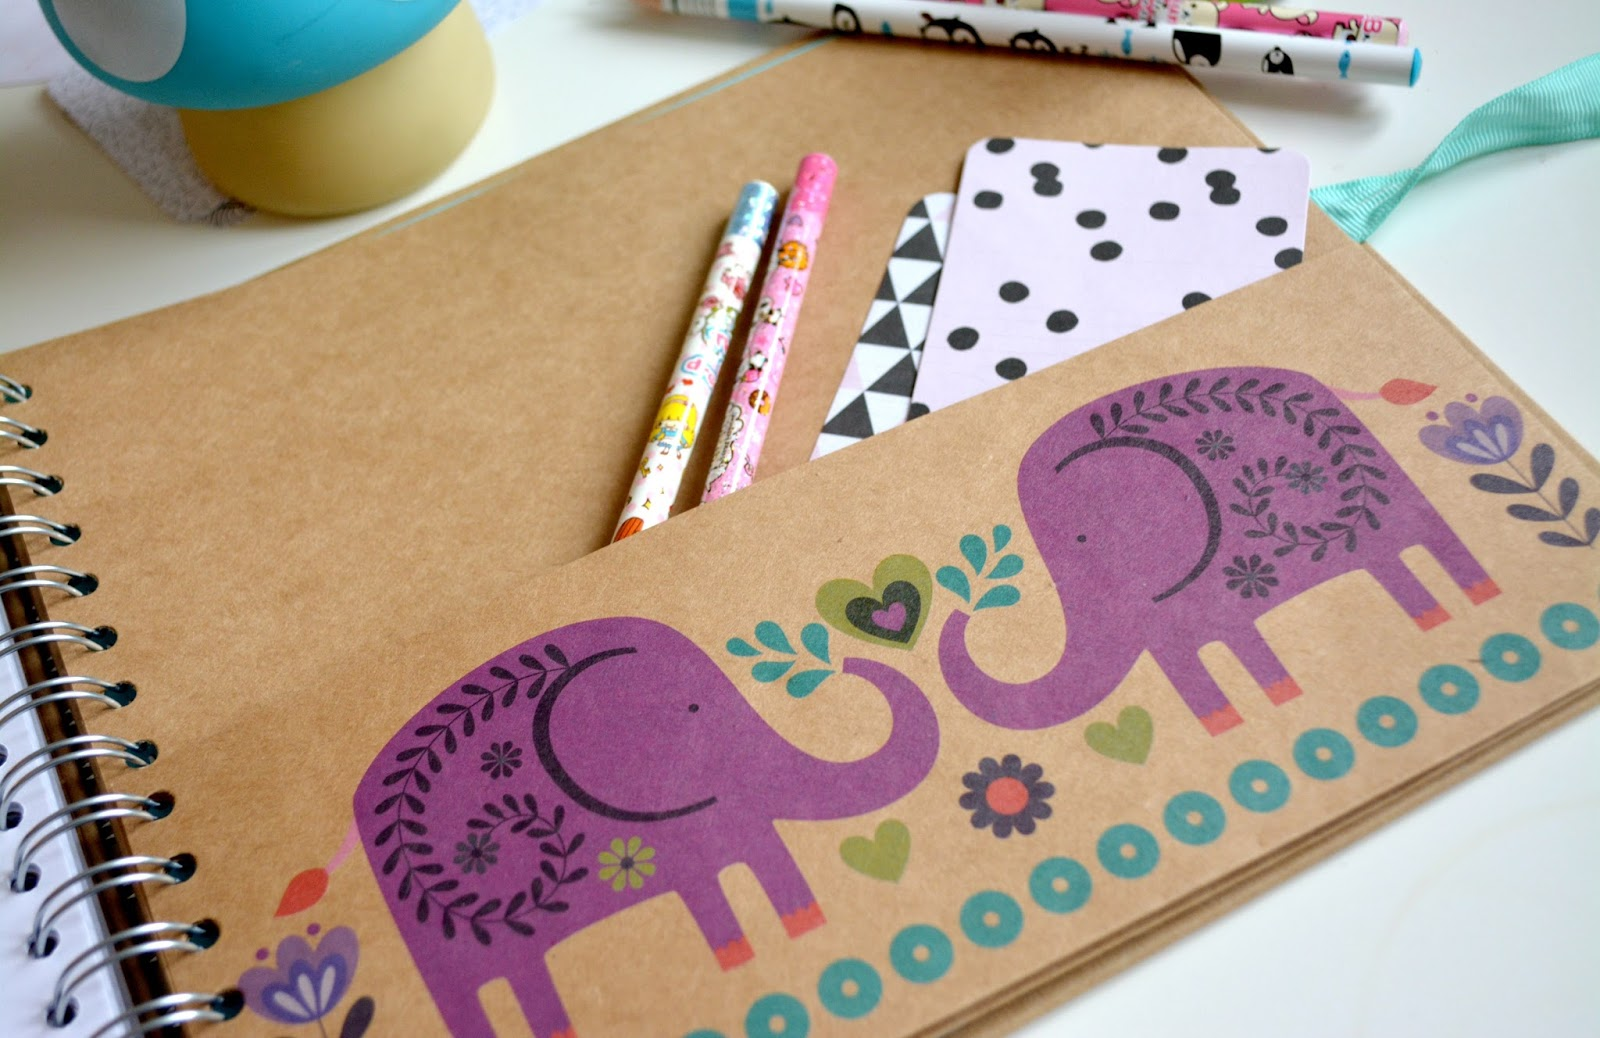 Scrapbook paperchase - The First One Is The Beautiful Elephant Design Print Actually It Is More Like A Scrapbook Rather Than A Notebook As I Am Hoping To Go Travelling More This